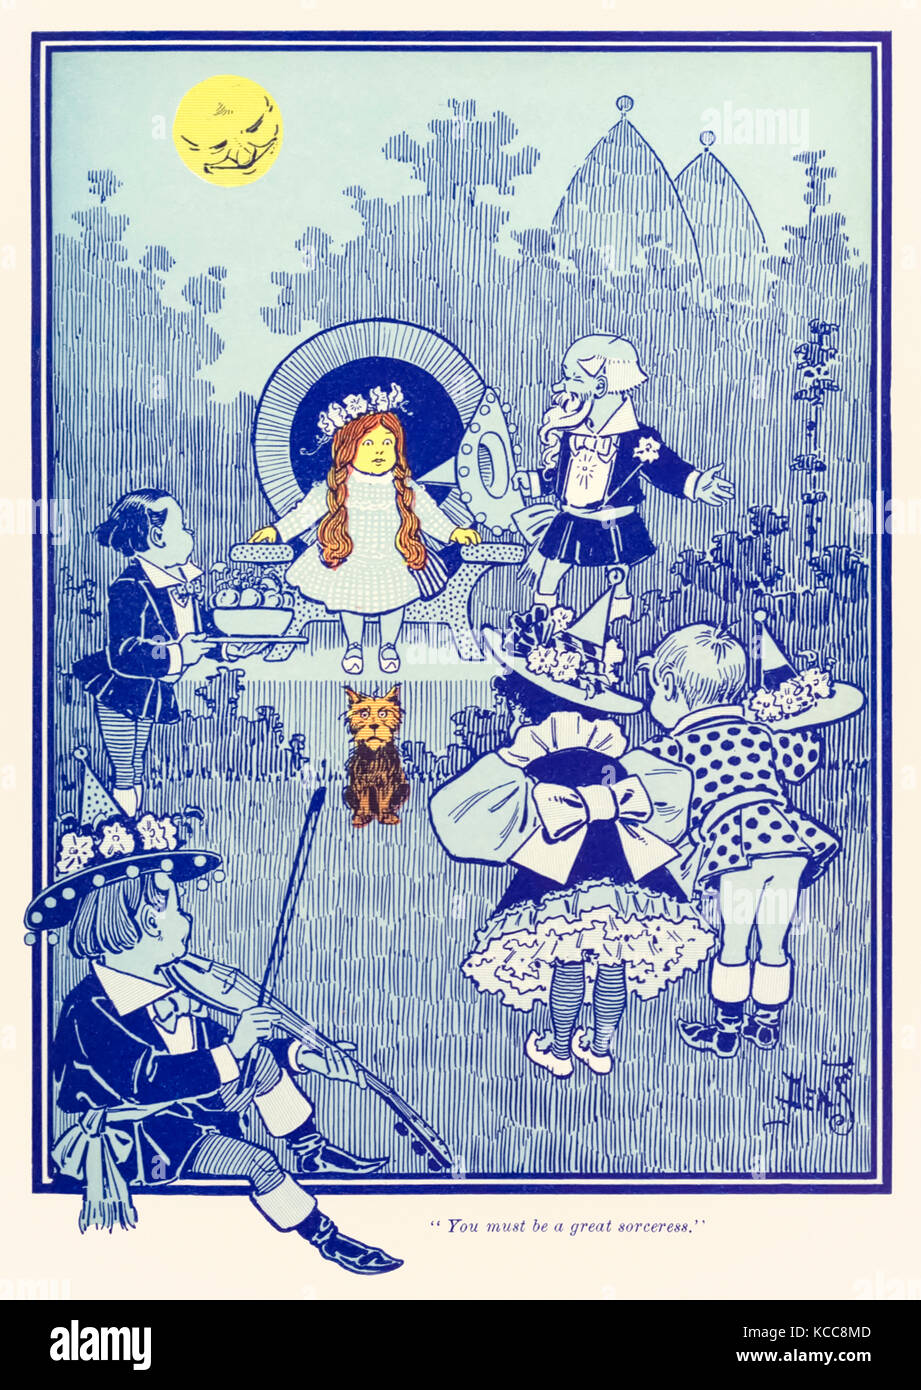 """You must be a great sorceress."" from 'The Wonderful Wizard of Oz' by L. Frank Baum (1856-1919) with pictures by - Stock Image"